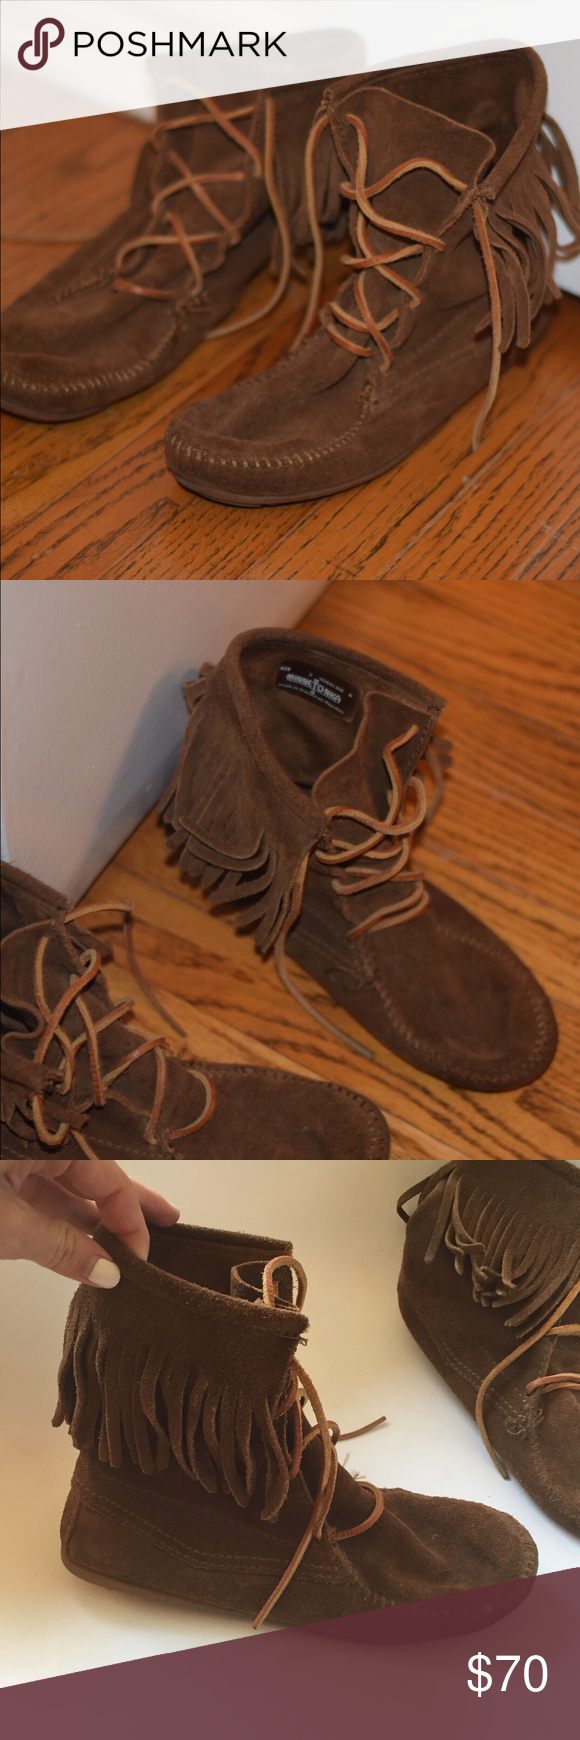 Minnetonka moccasins - 7 Minnetonka moccasins in size 7. Very lightly used. Great condition. Minnetonka Shoes Moccasins